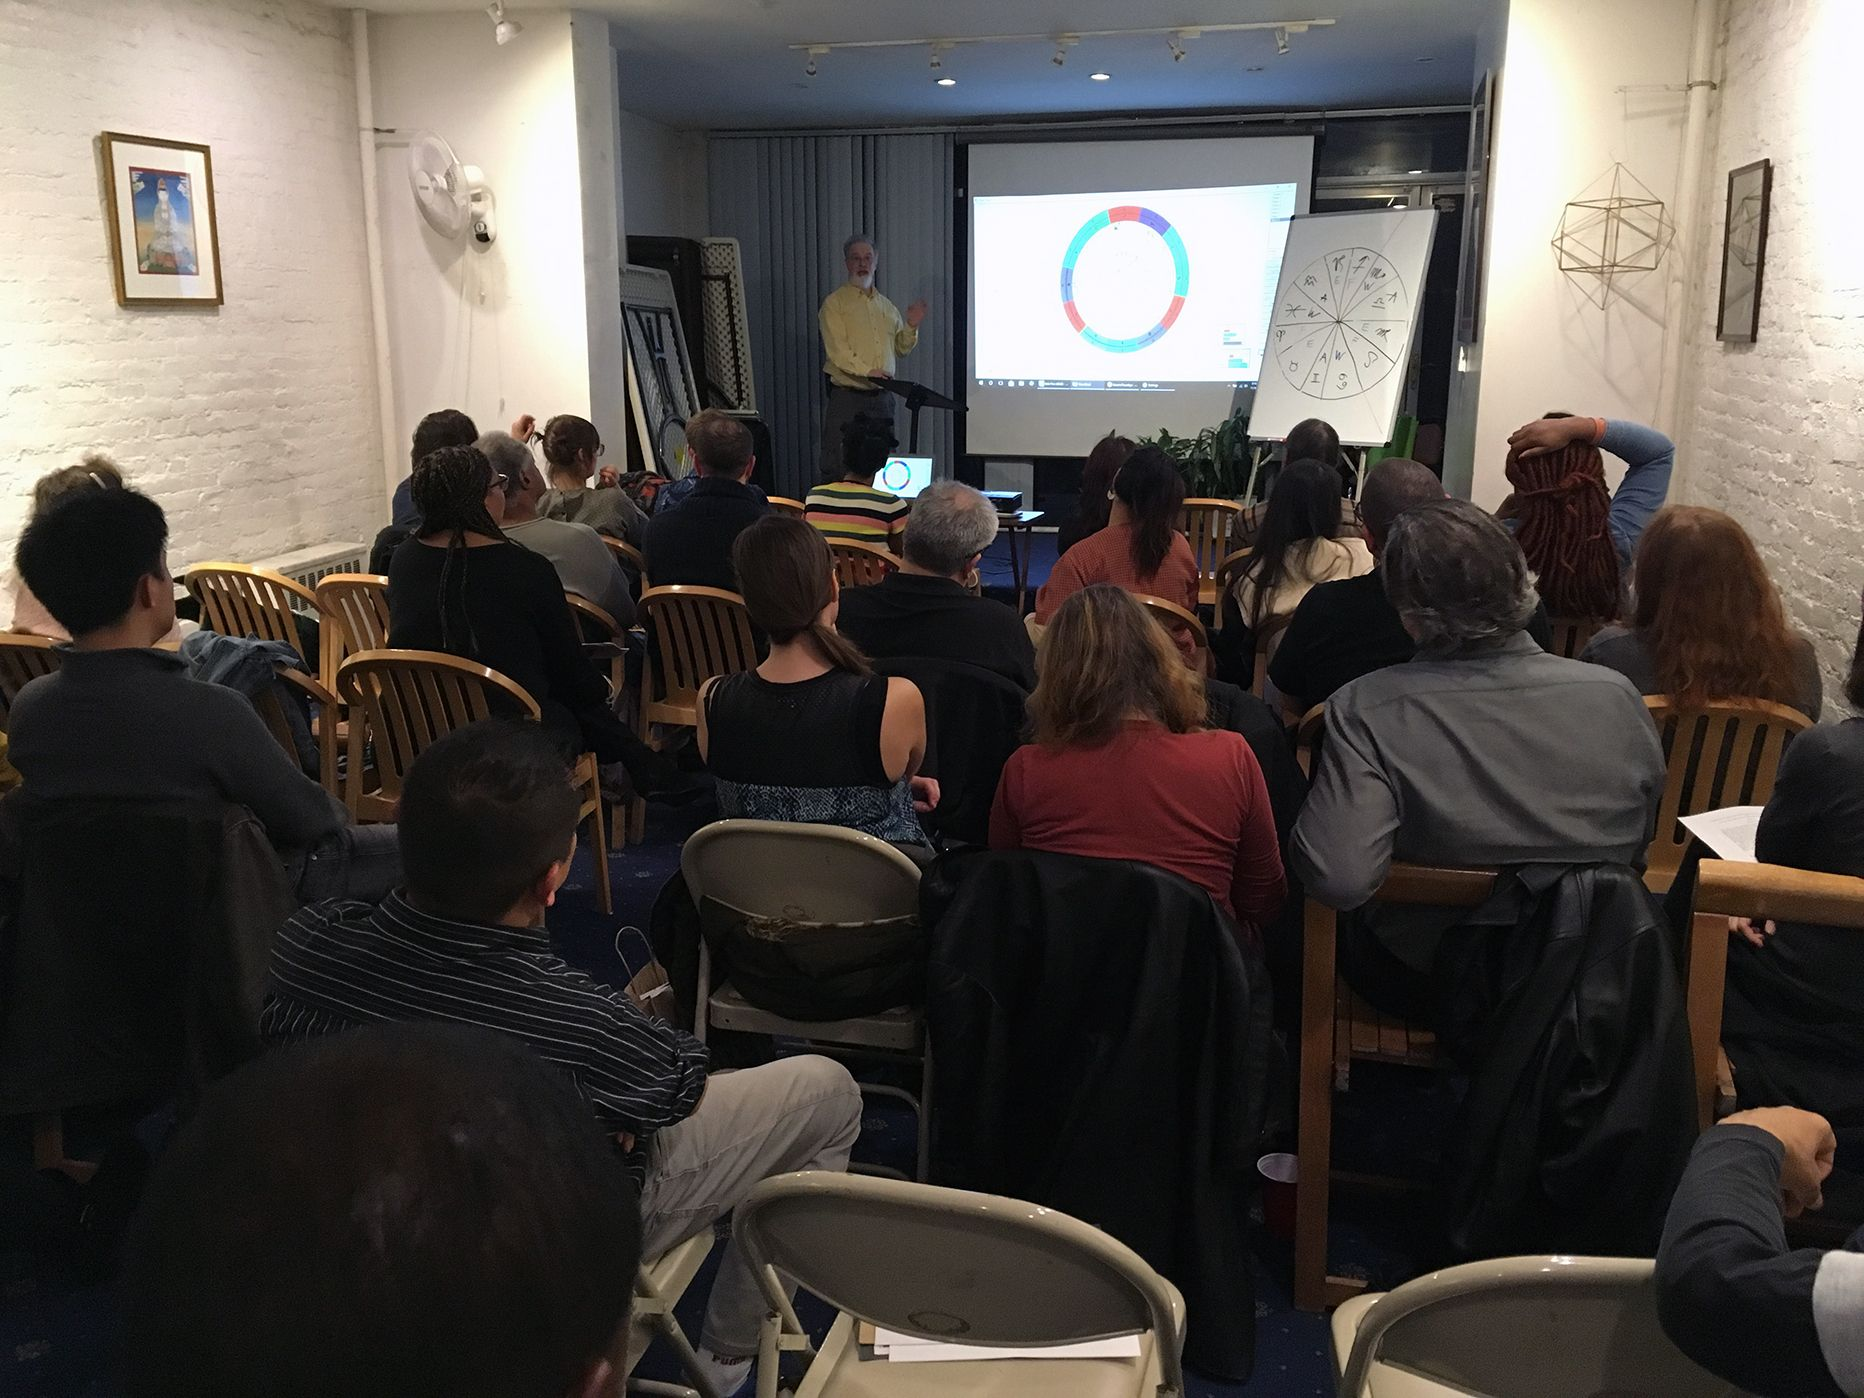 The New York City Astrology Meetup